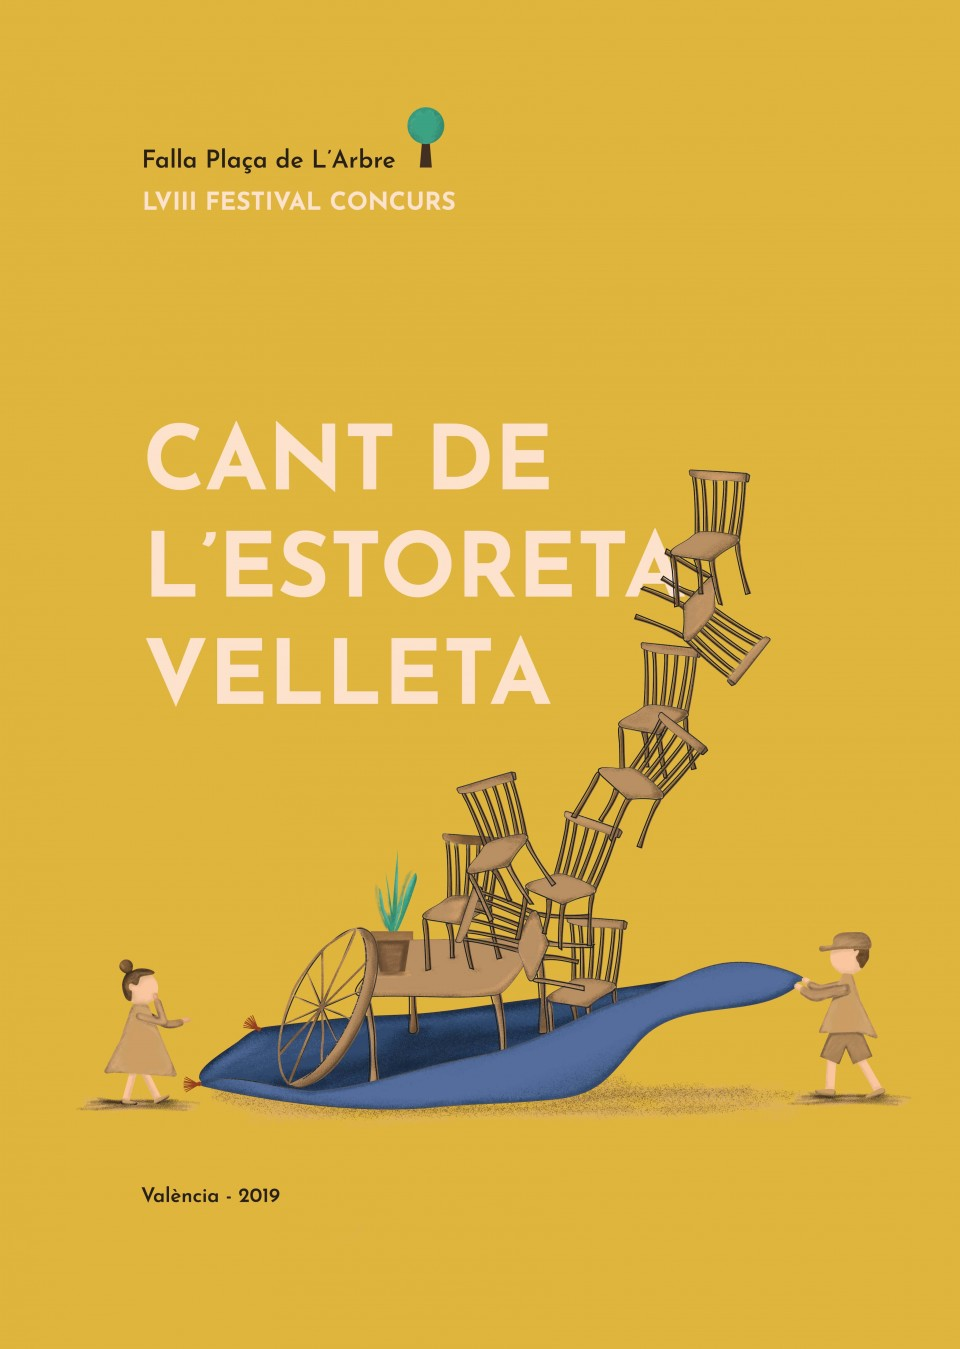 Poster Winner of the EIGHTH Contest of the Poster of the fifty-eighth Edition of the Cant of l Estor